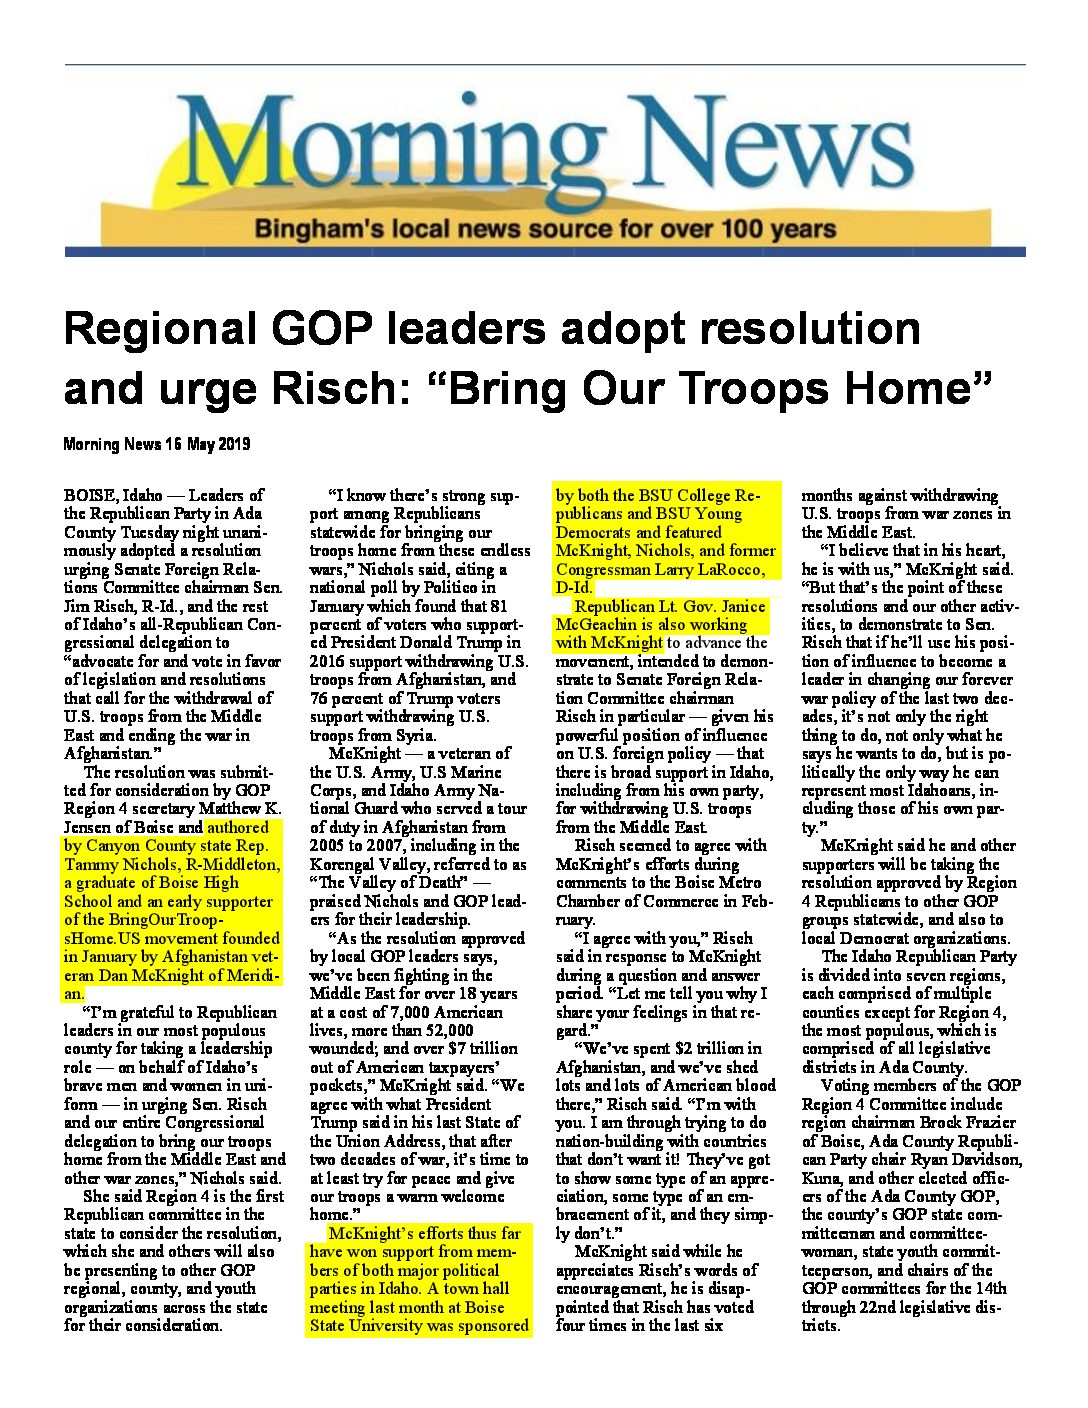 Blackfoot Morning News – Regional GOP leaders adopt resolution and urge Risch _Bring Our Troops Home_